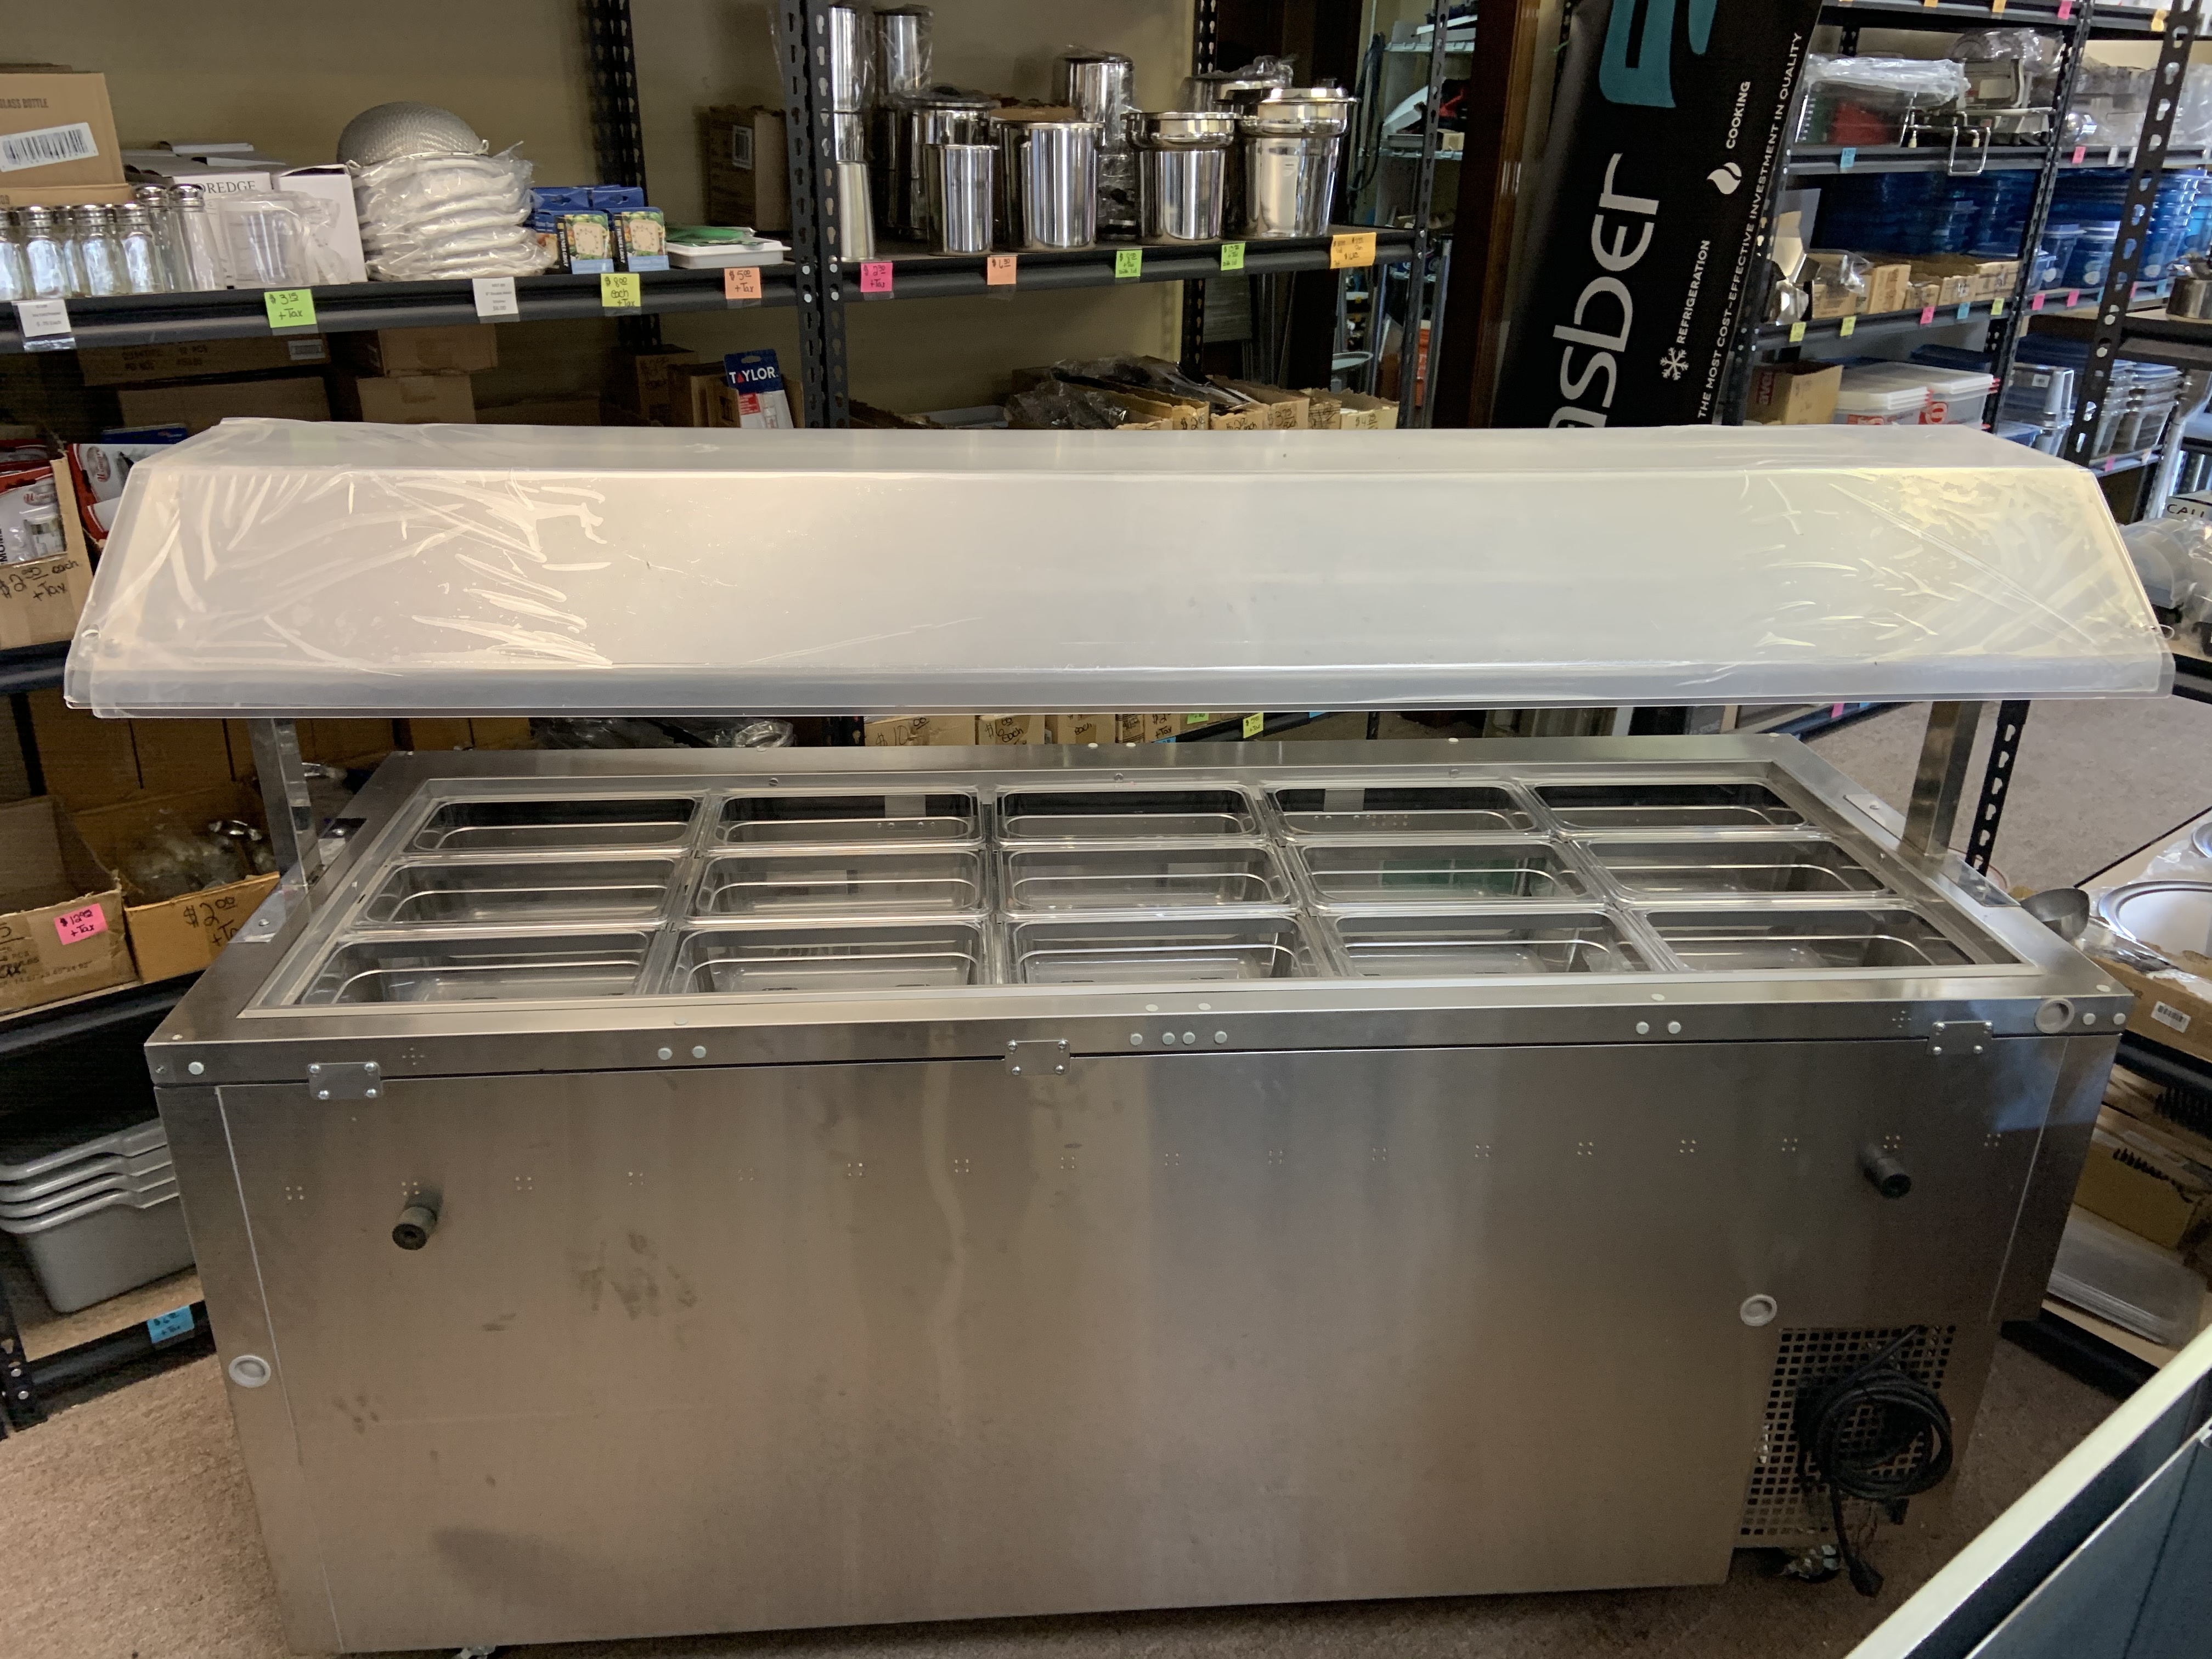 Like New Turbo Air Refrigerated Buffet Display Table with Sneeze Guard  $ 3000.00